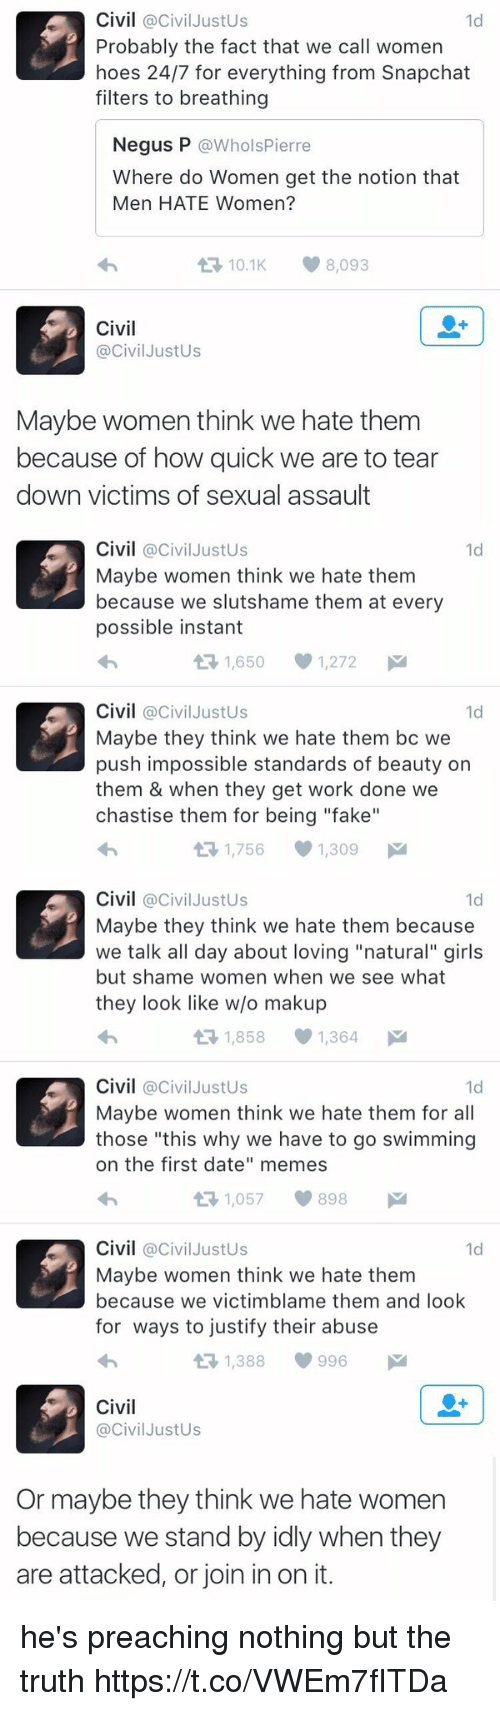 """Fake, Girls, and Hoes: Civil @Civil Justus  1d  Probably the fact that we call women  hoes 24/7 for everything from Snapchat  filters to breathing  Negus P  @Whols Pierre  Where do Women get the notion that  Men HATE Women?  t 10.1 8,093  Civil  @Civil JustUs  Maybe women think we hate them  because of how quick we are to tear  down victims of sexual assault   Civil  @Civil Justus  1d  Maybe women think we hate them  because we slutshame them at every  possible instant  1,650 1,272  M  t Civil  Civil JustUs  1d  Maybe they think we hate them bc we  push impossible standards of beauty on  them & when they get work done we  chastise them for being """"fake""""  1,756 1,309  M   Civil  @Civil Justus  1d  Maybe they think we hate them because  we talk all day about loving """"natural"""" girls  but shame women when we see what  they look like w/o makup  1,858 1,364  M  t Civil  @Civil Justus  1d  Maybe women think we hate them for all  those """"this why we have to go swimming  on the first date"""" memes  1,057 898  M  t Civil  @Civil Justus  1d  Maybe women think we hate them  because we victimblame them and look  for ways to justify their abuse  t 1,388 996   Civil  Civil JustUs  Or maybe they think we hate women  because we stand by idly when they  are attacked, or join in on it. he's preaching nothing but the truth https://t.co/VWEm7fITDa"""